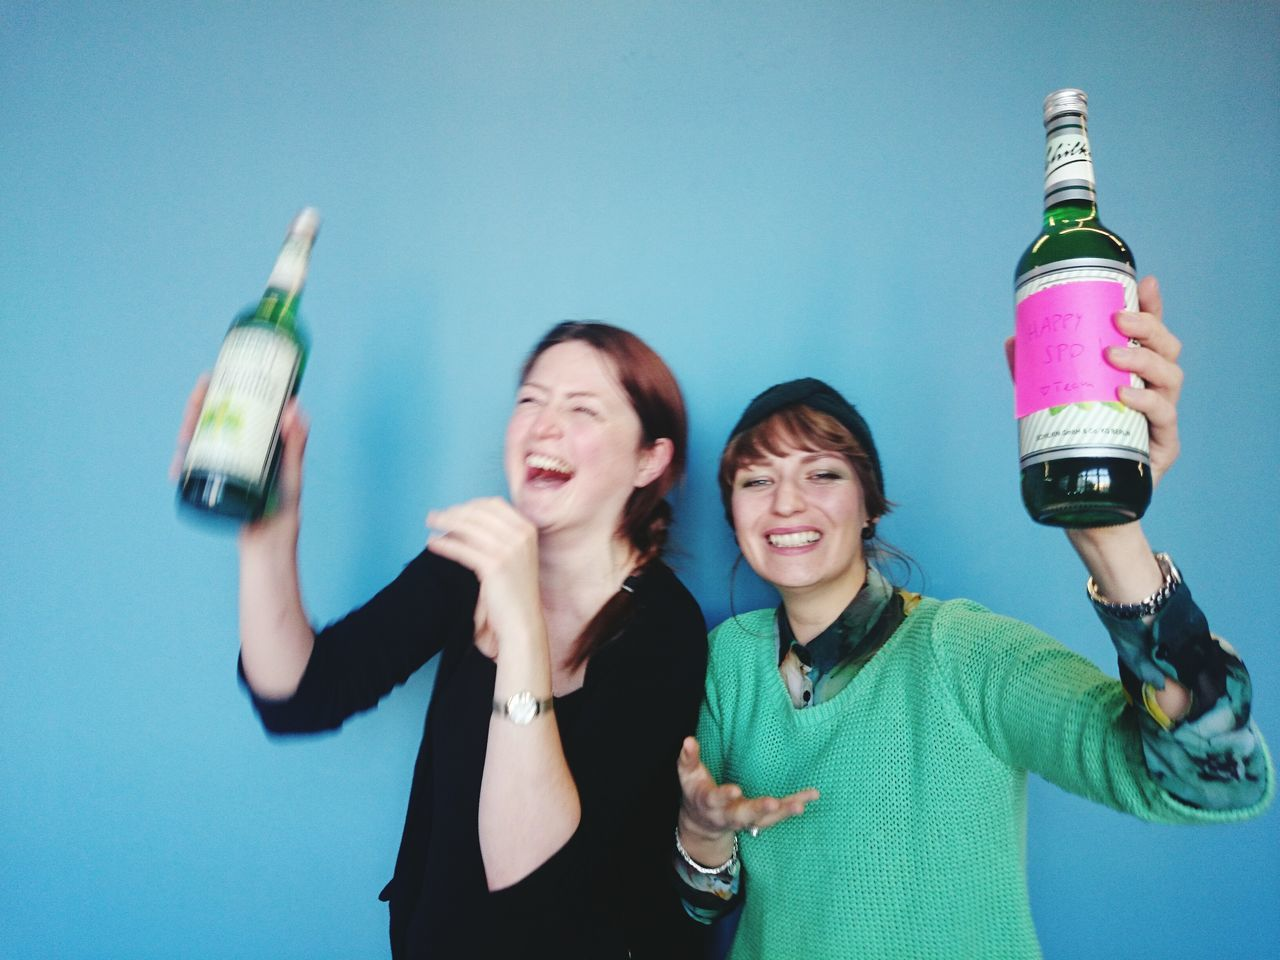 Beautiful stock photos of st patricks day, togetherness, clear sky, leisure activity, young women